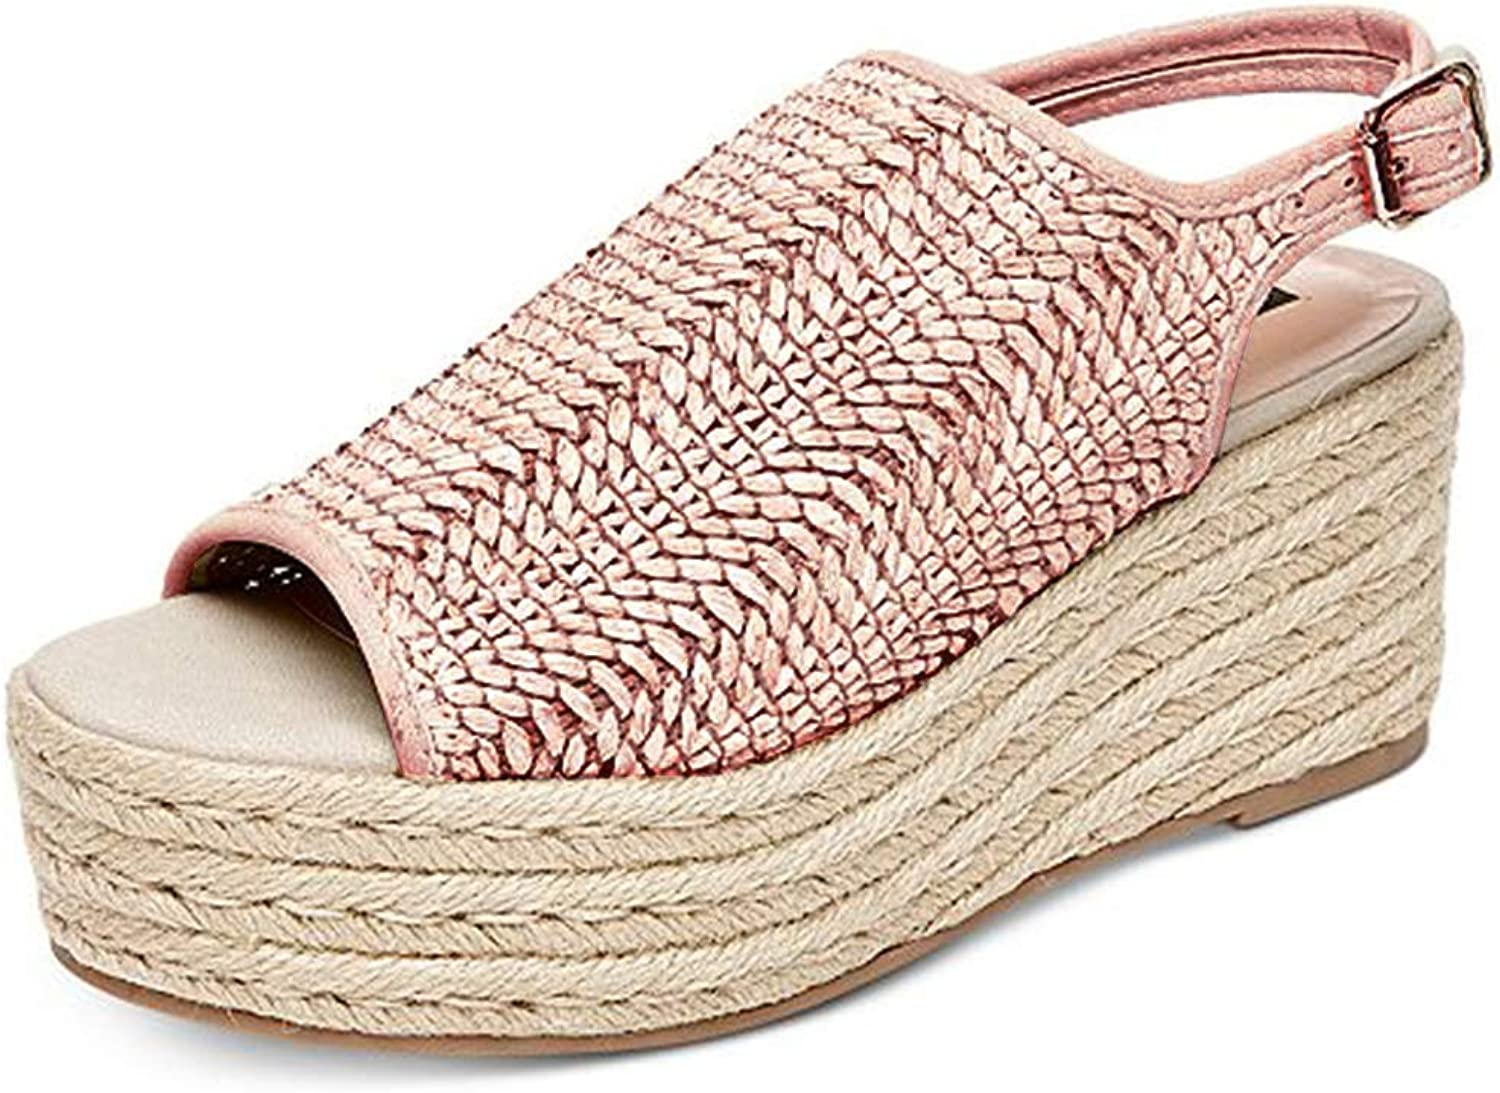 Jessie Women Wedge Sandals Casual Espadrilles Platform Sandals Studded Buckle Ankle Strap Open Toe Sandals